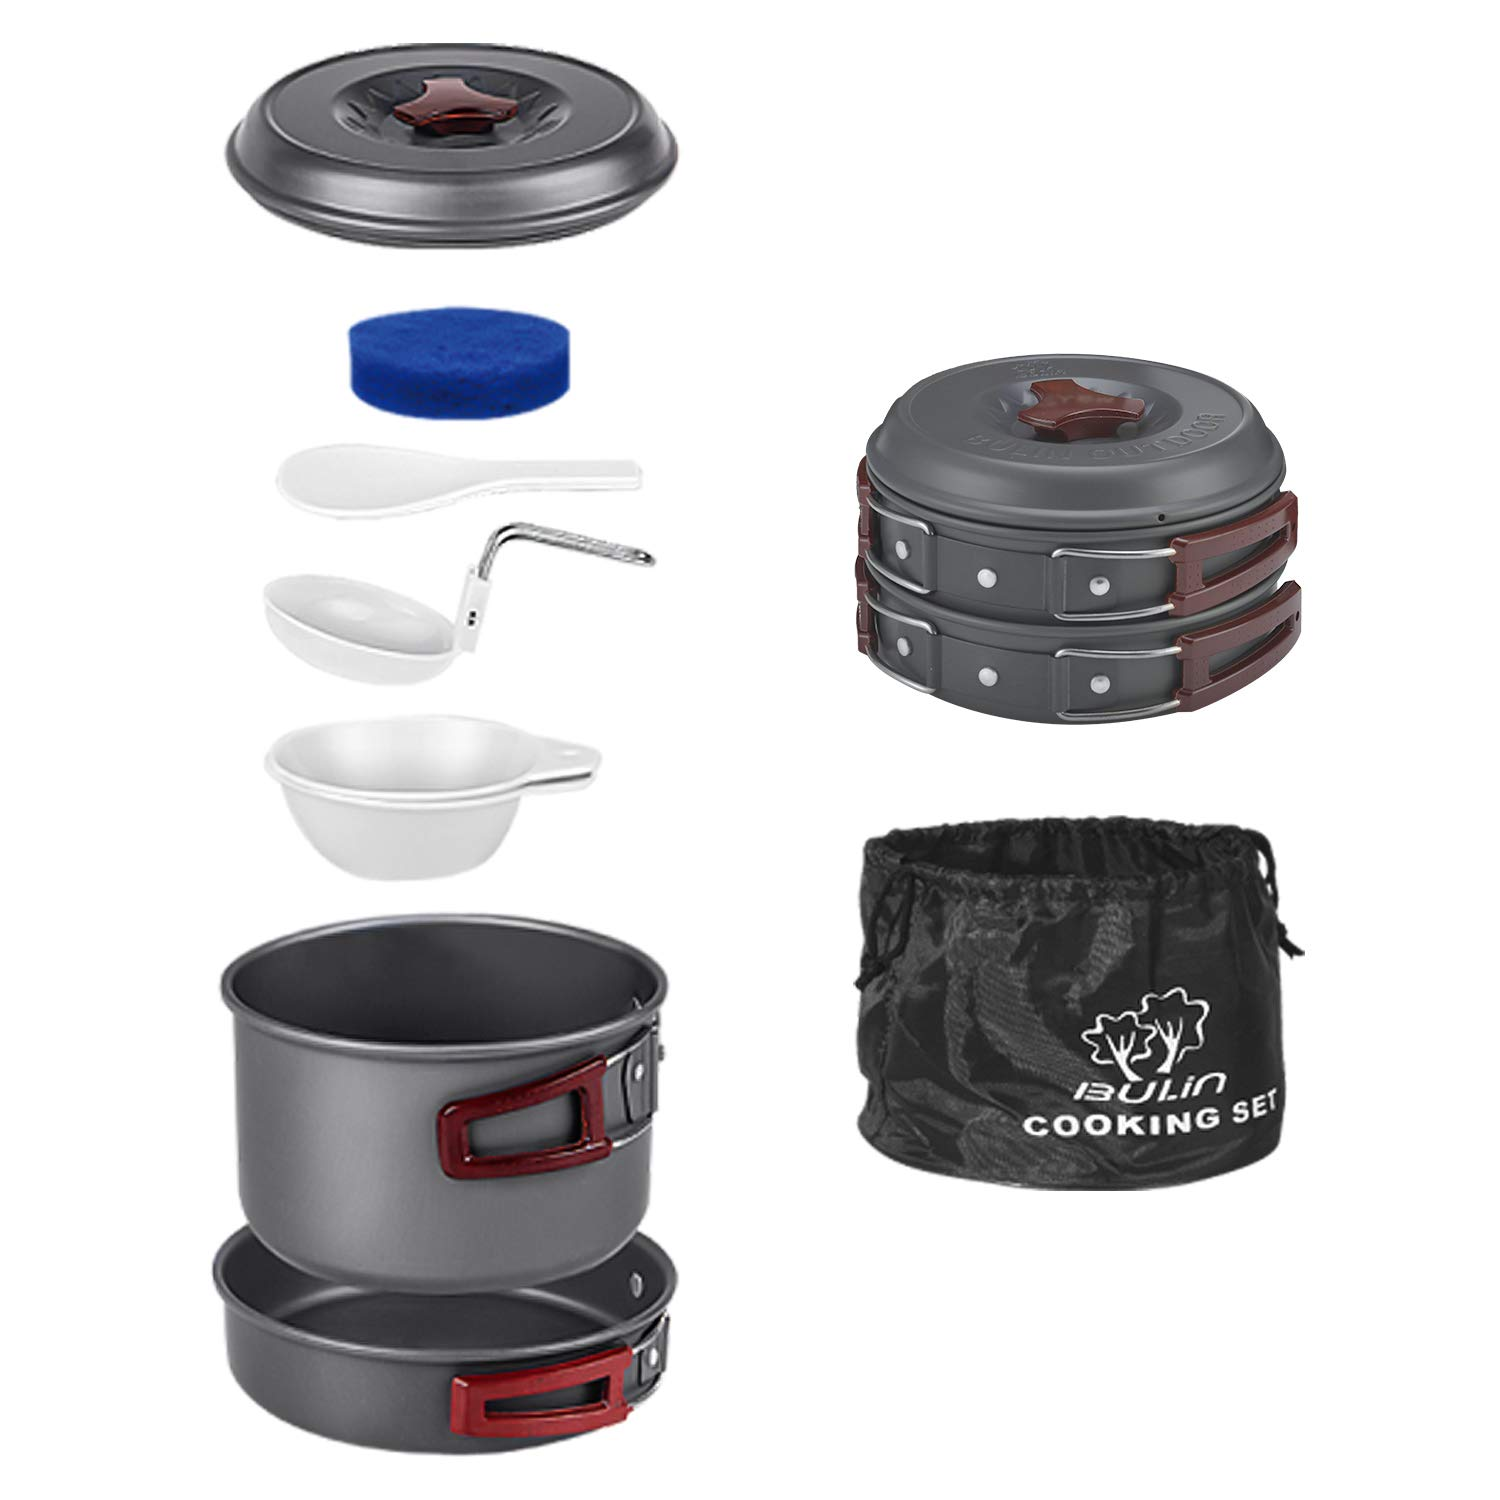 Bulin Camping Cookware Mess Kit Outdoor Backpacking Hiking Gear Cooking Equipment, Lightweight Compact Durable Cook Set (8 PCS) by Bulin